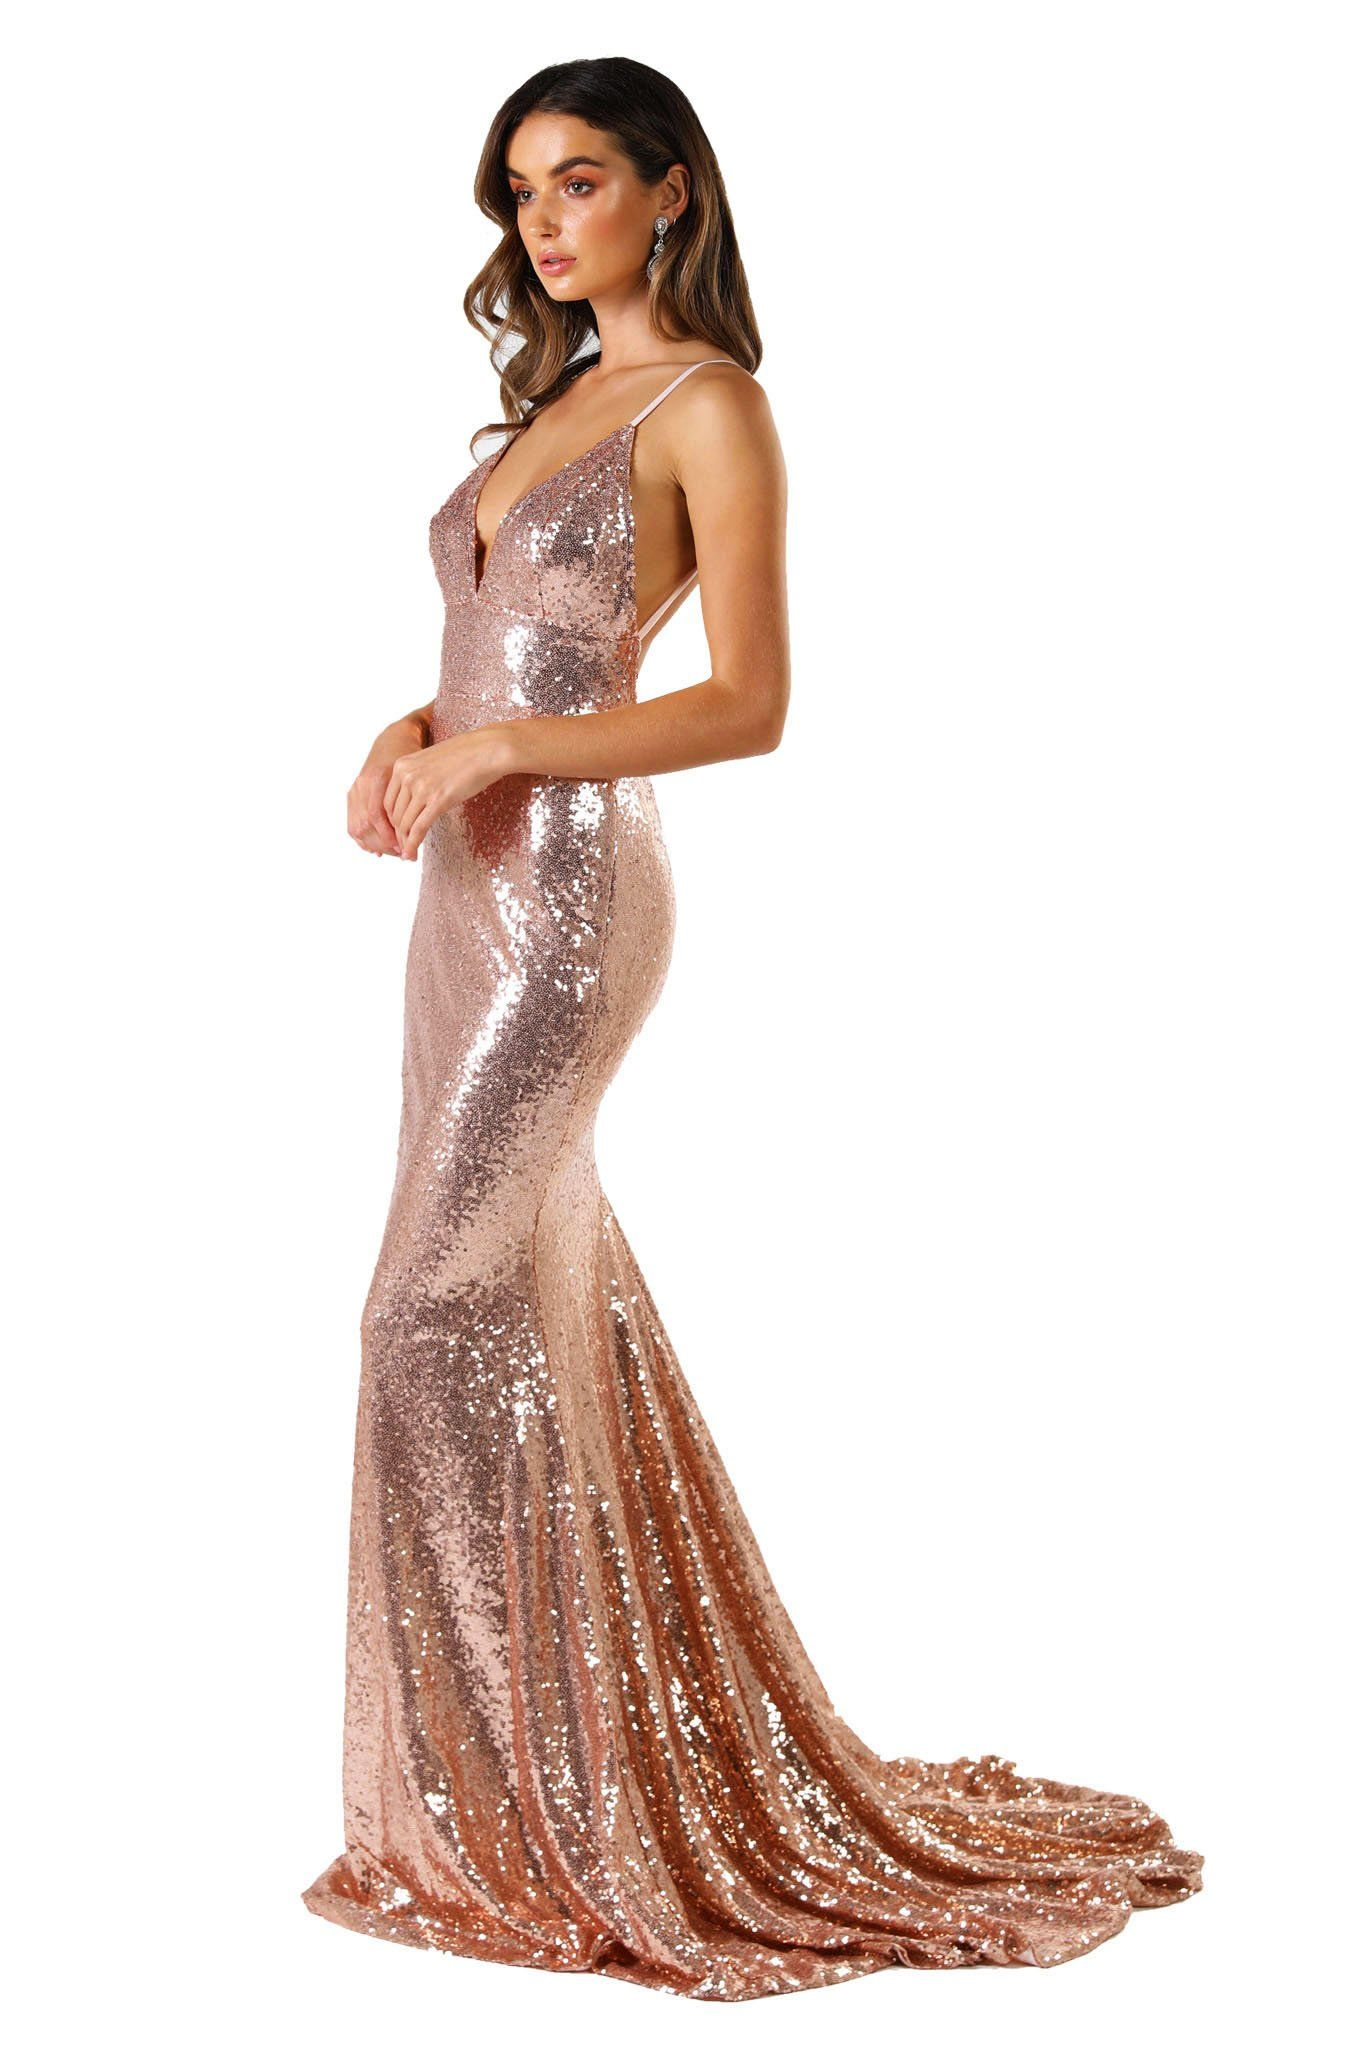 1a38d911c5267 Rose Gold Sequin Formal Prom Sleeveless Gown featuring Deep V Neck, V  Shaped Backless Design